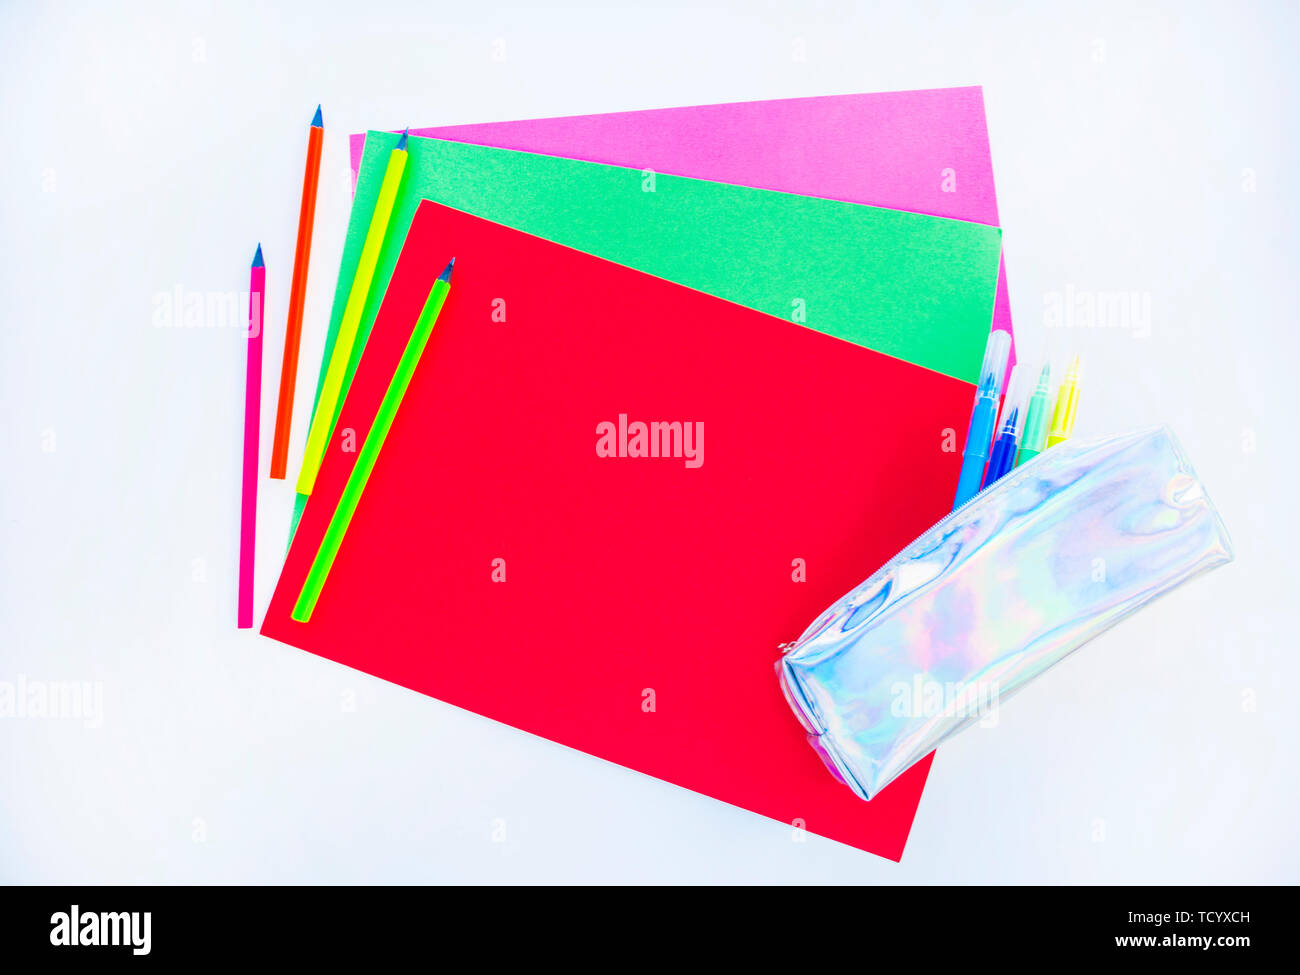 Colorful paper, neon pencils and holographic pencil case on white background with copyspace. Flat lay style. Back to school concept. - Stock Image